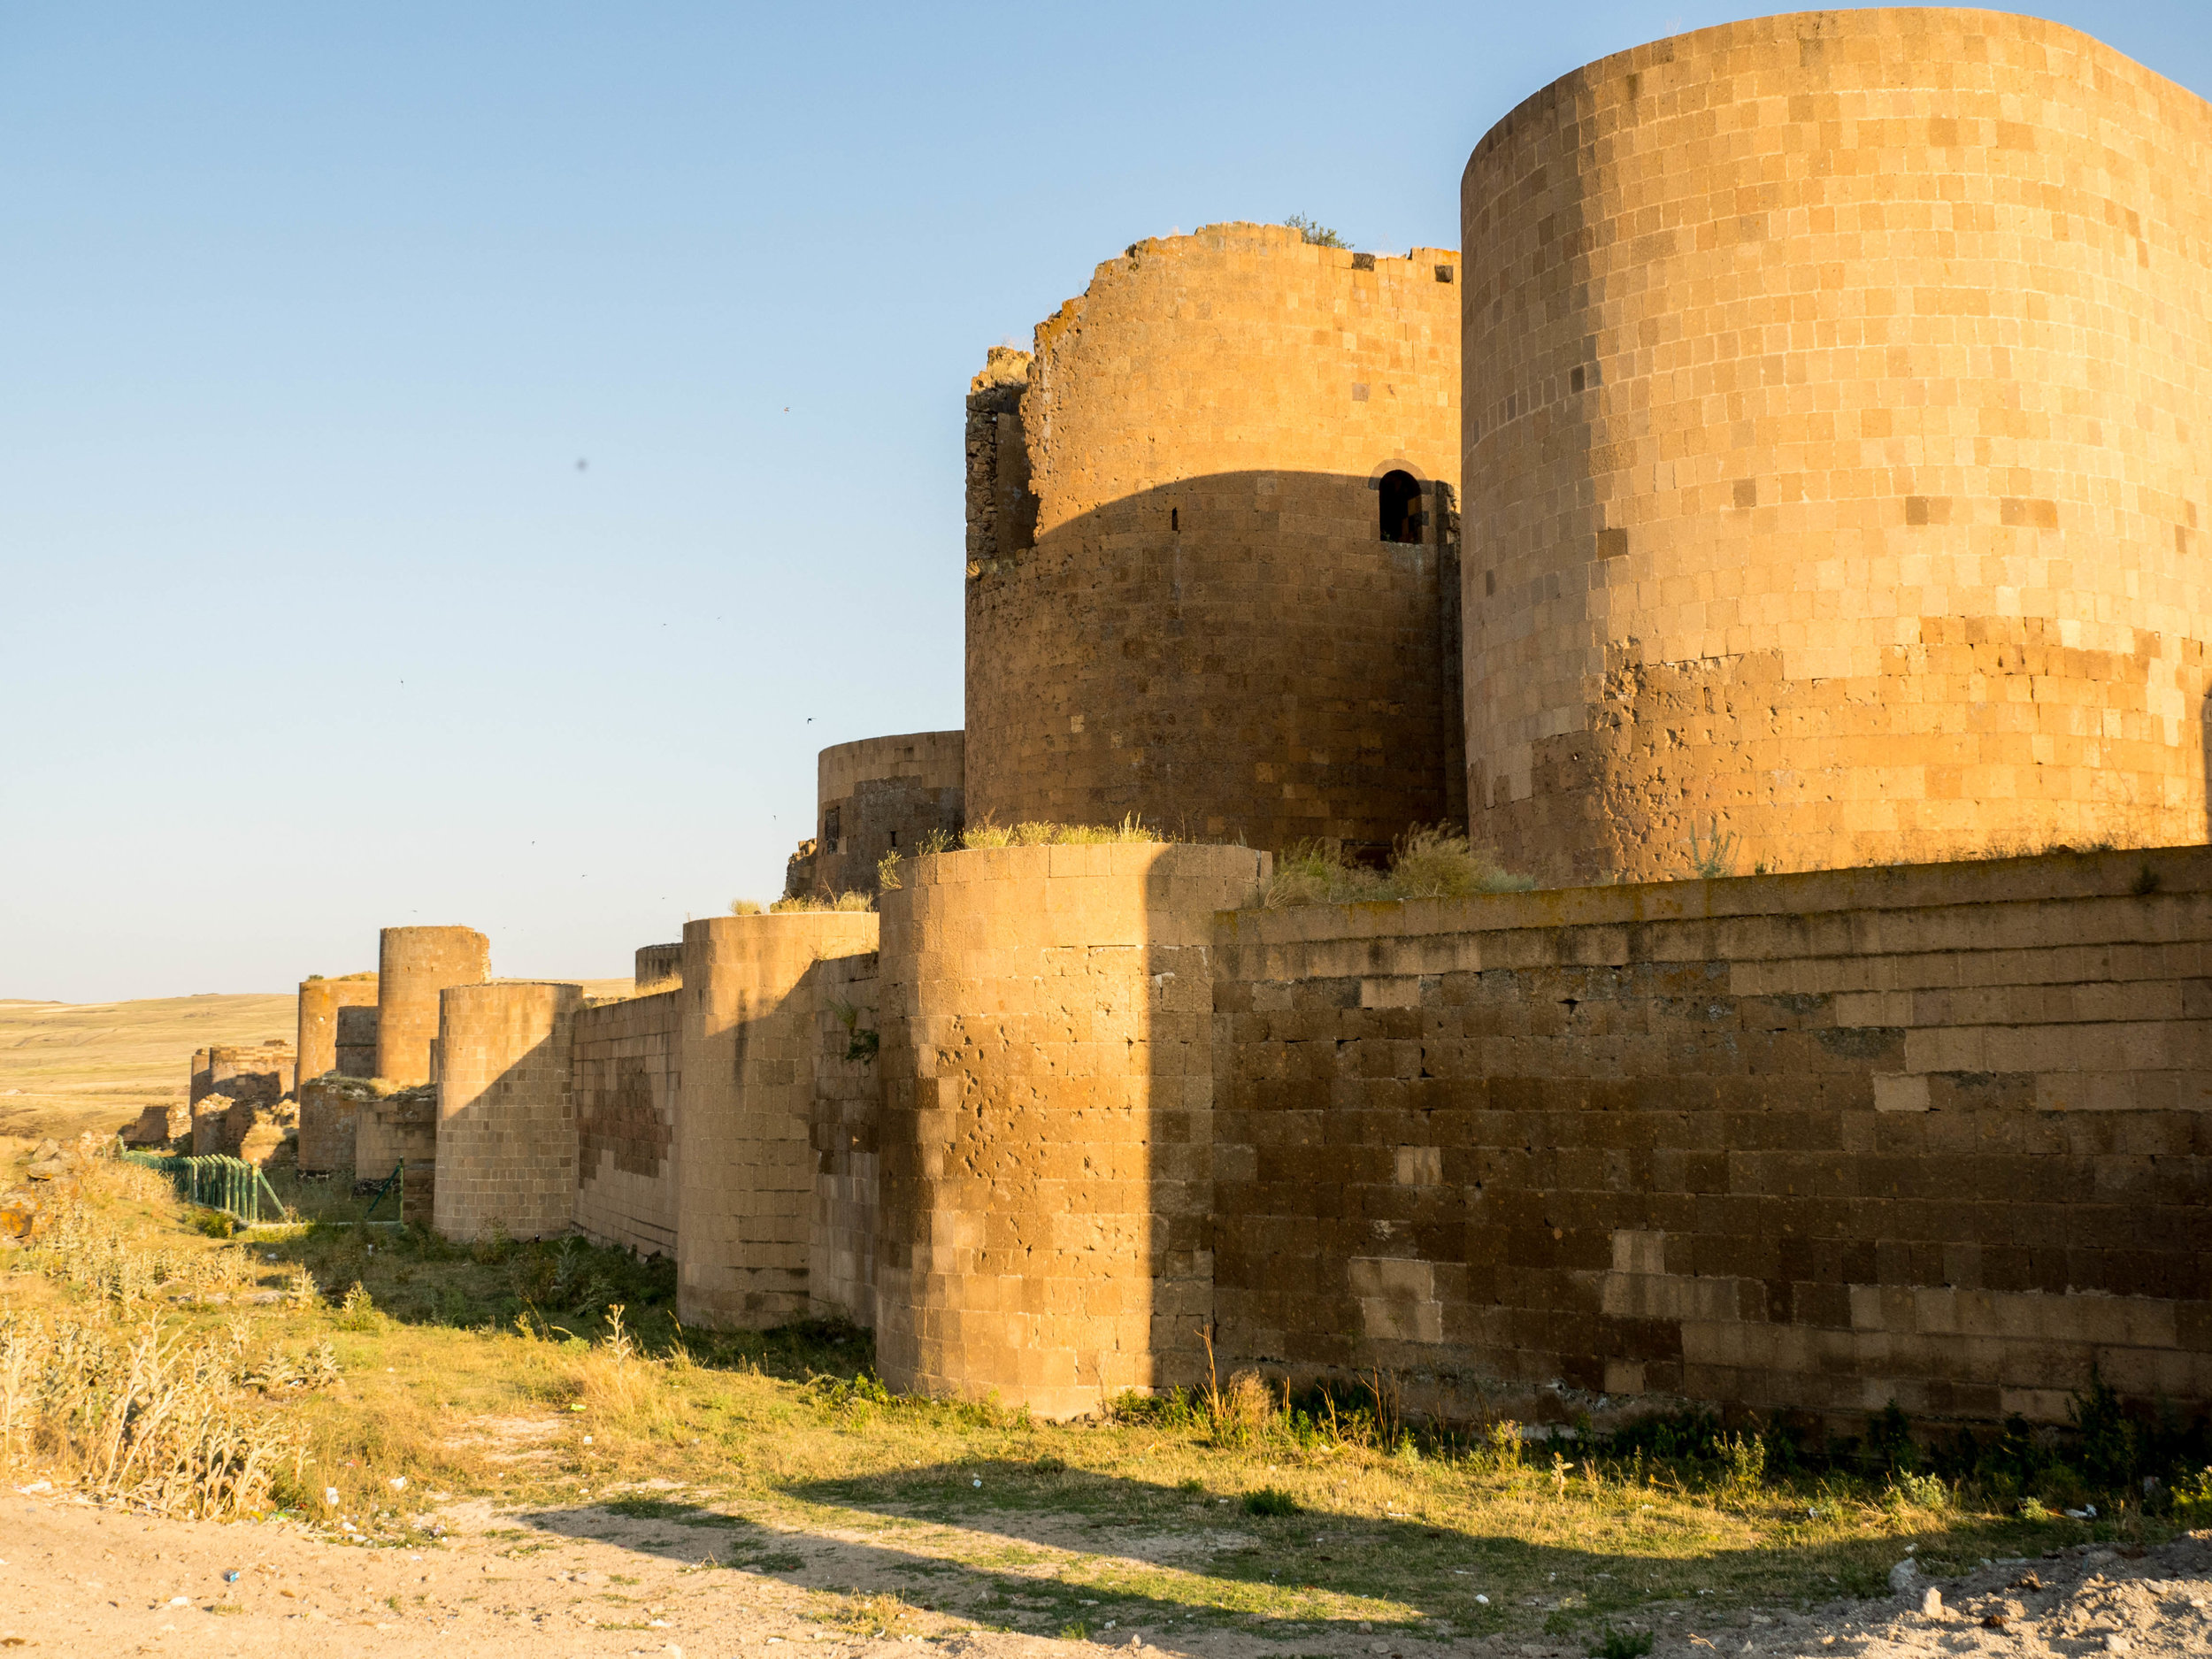 Restored City Walls — Exterior (in the evening sun)